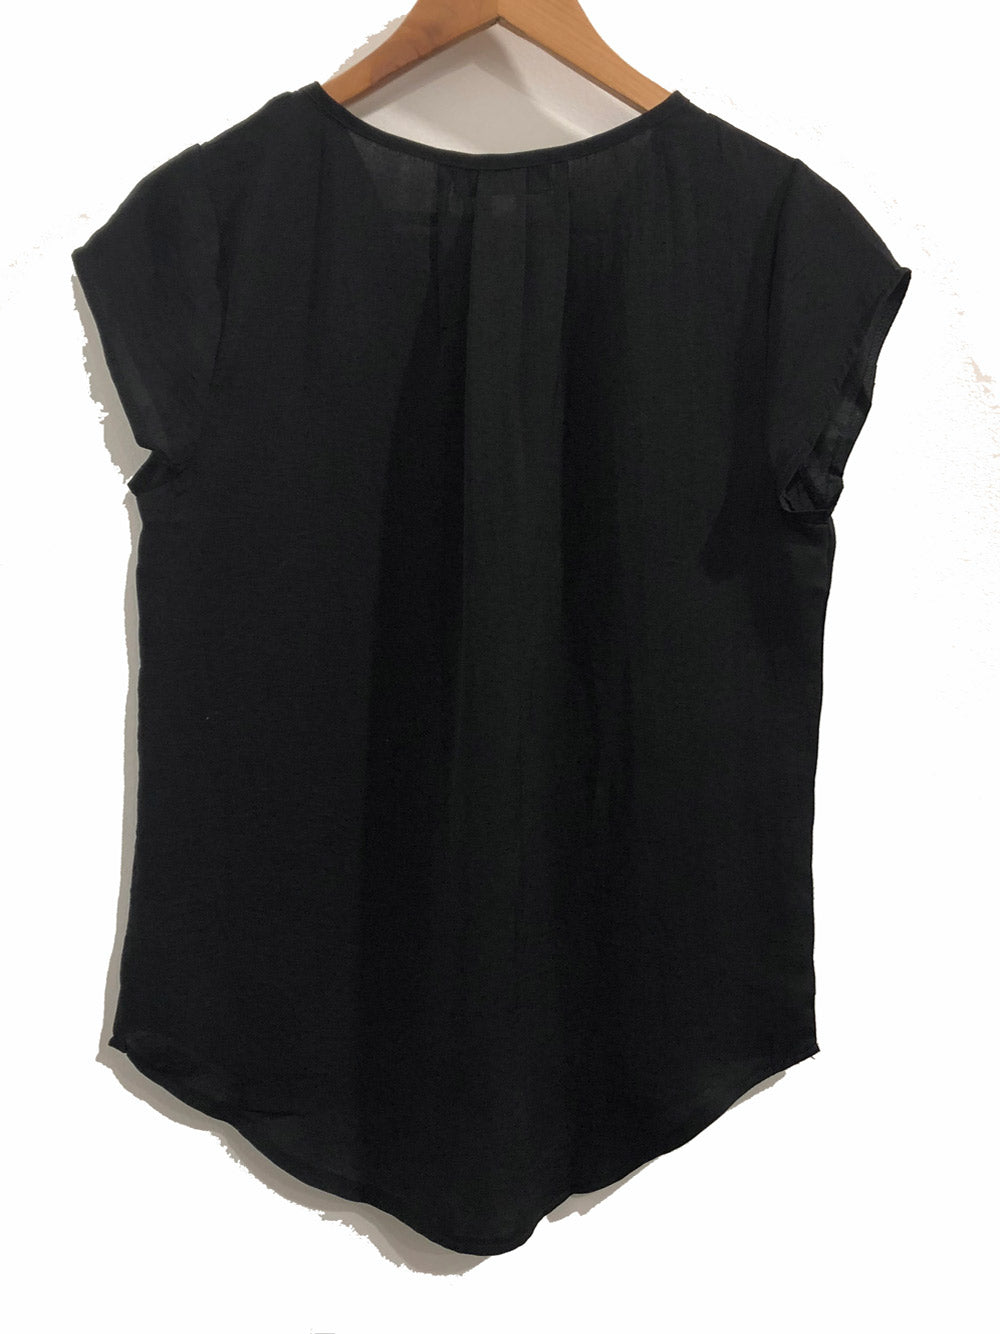 INZAGI Cocktail Top Black